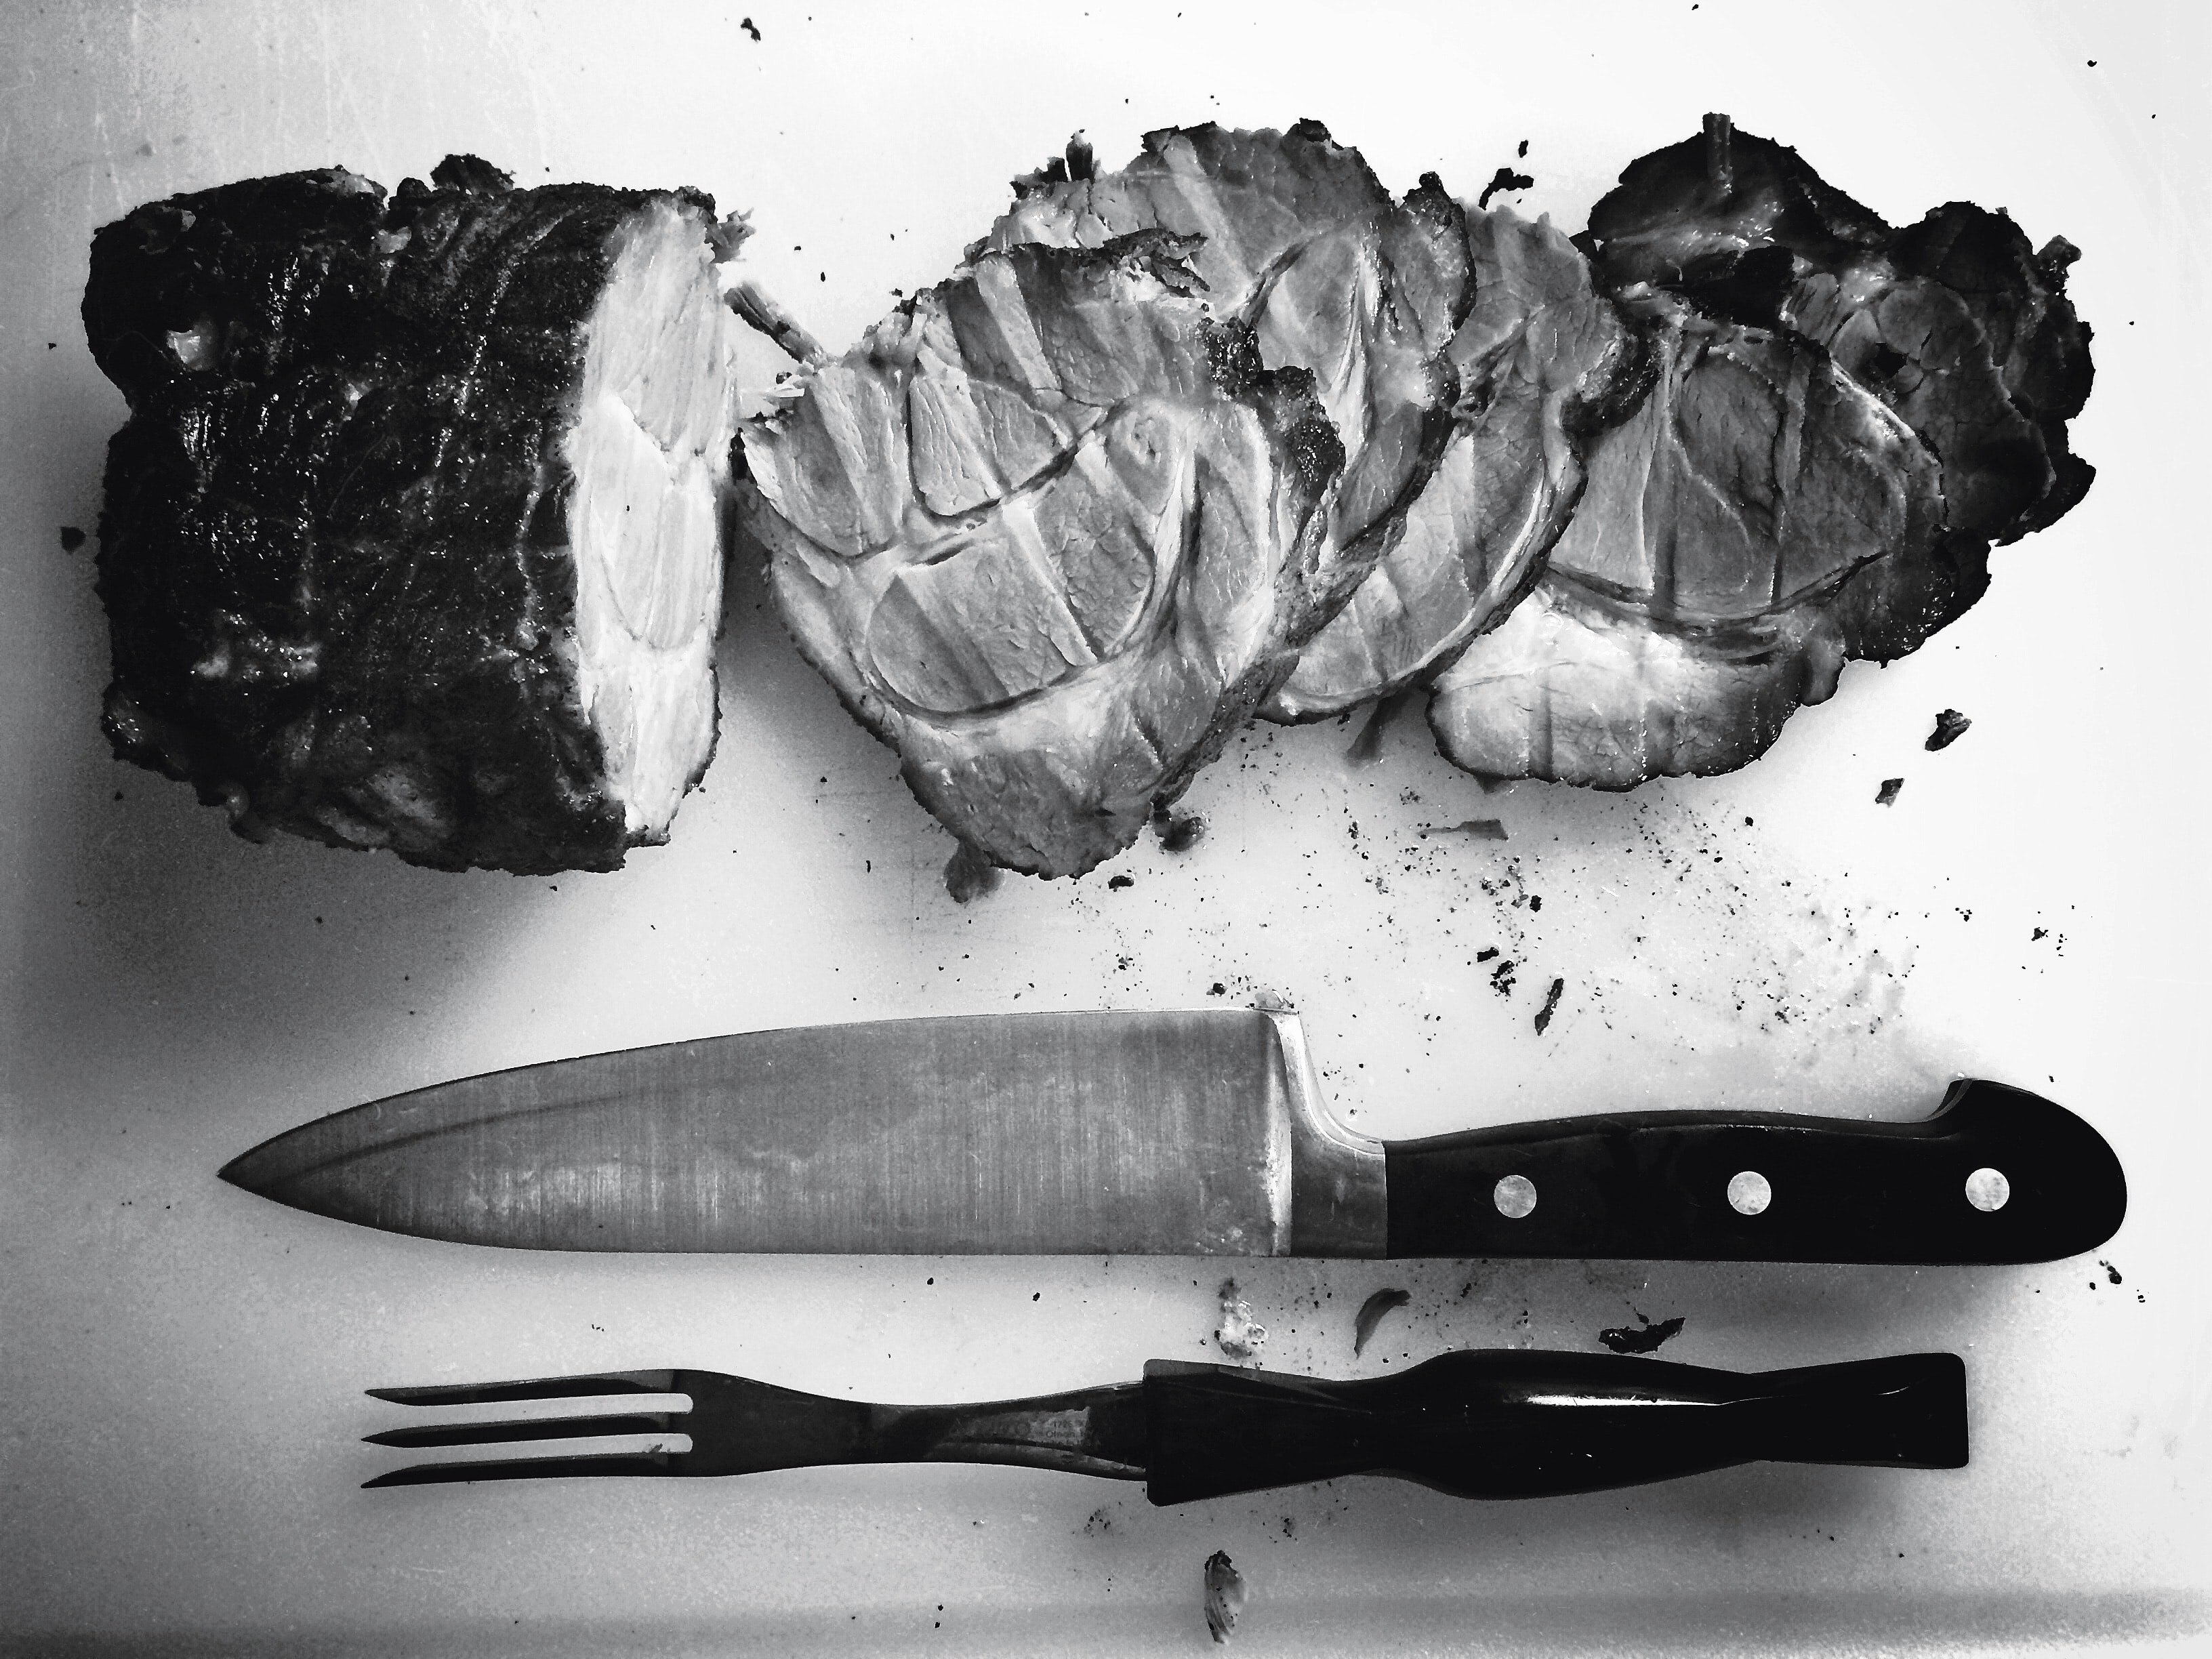 A black-and-white shot of a knife and fork next to a cut ham